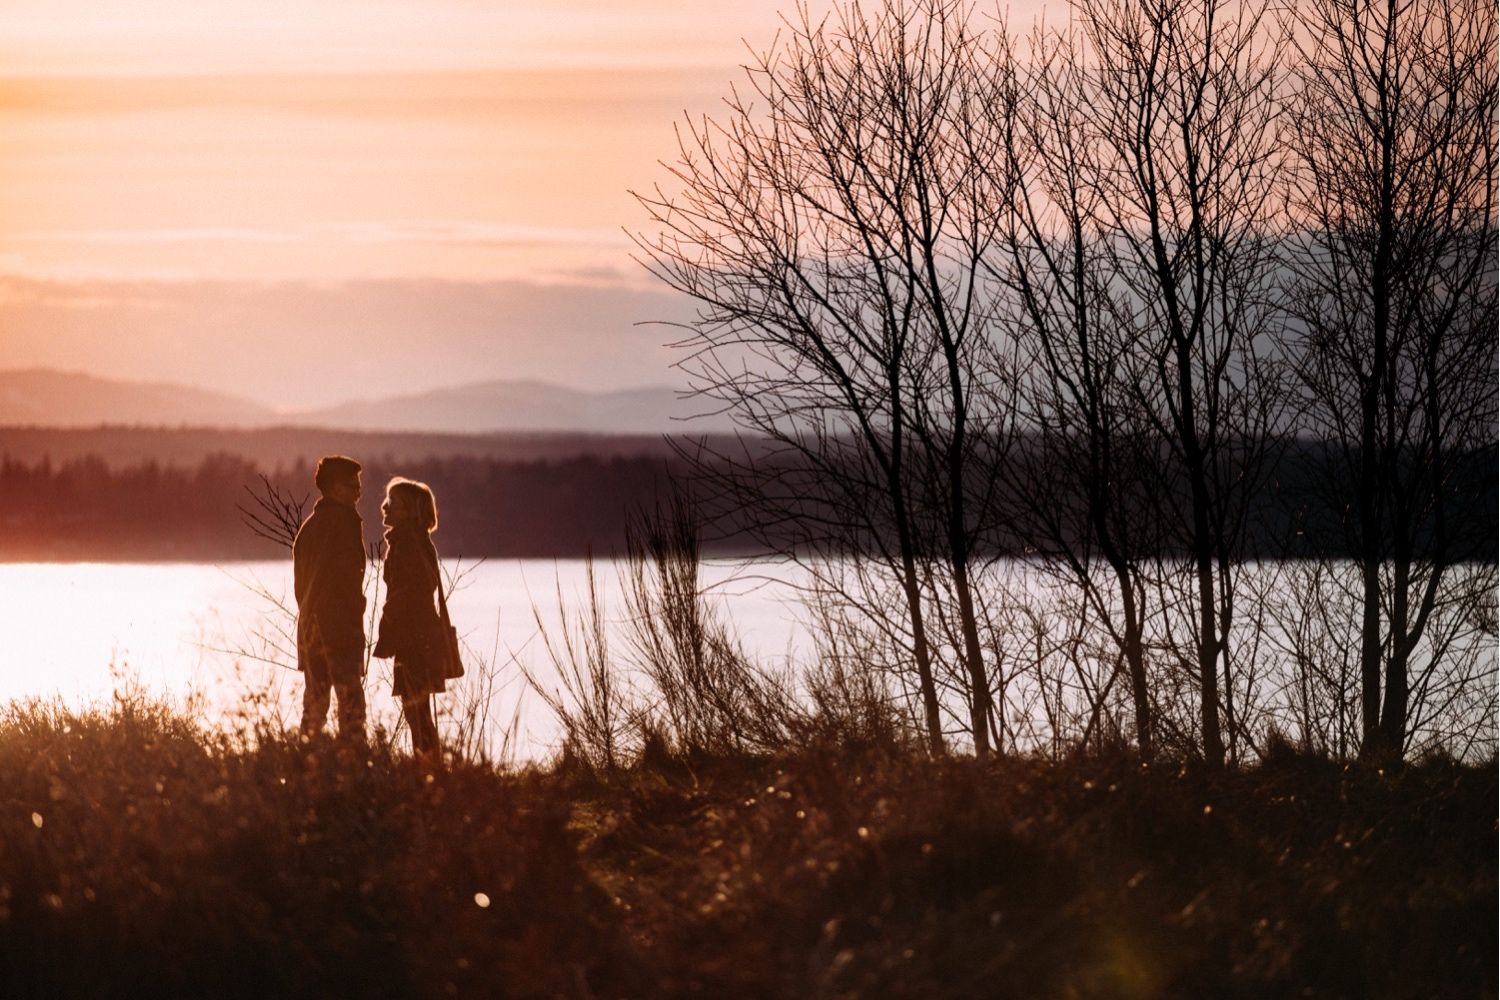 05_MC-8_sunsetproposal_adventure,_adventurous,_discoverypark_zoe_elopement_elopementphotographer_zoeburchardstudio_seattlebride_sunset_burchard_proposal,_seattle_photographer.jpg